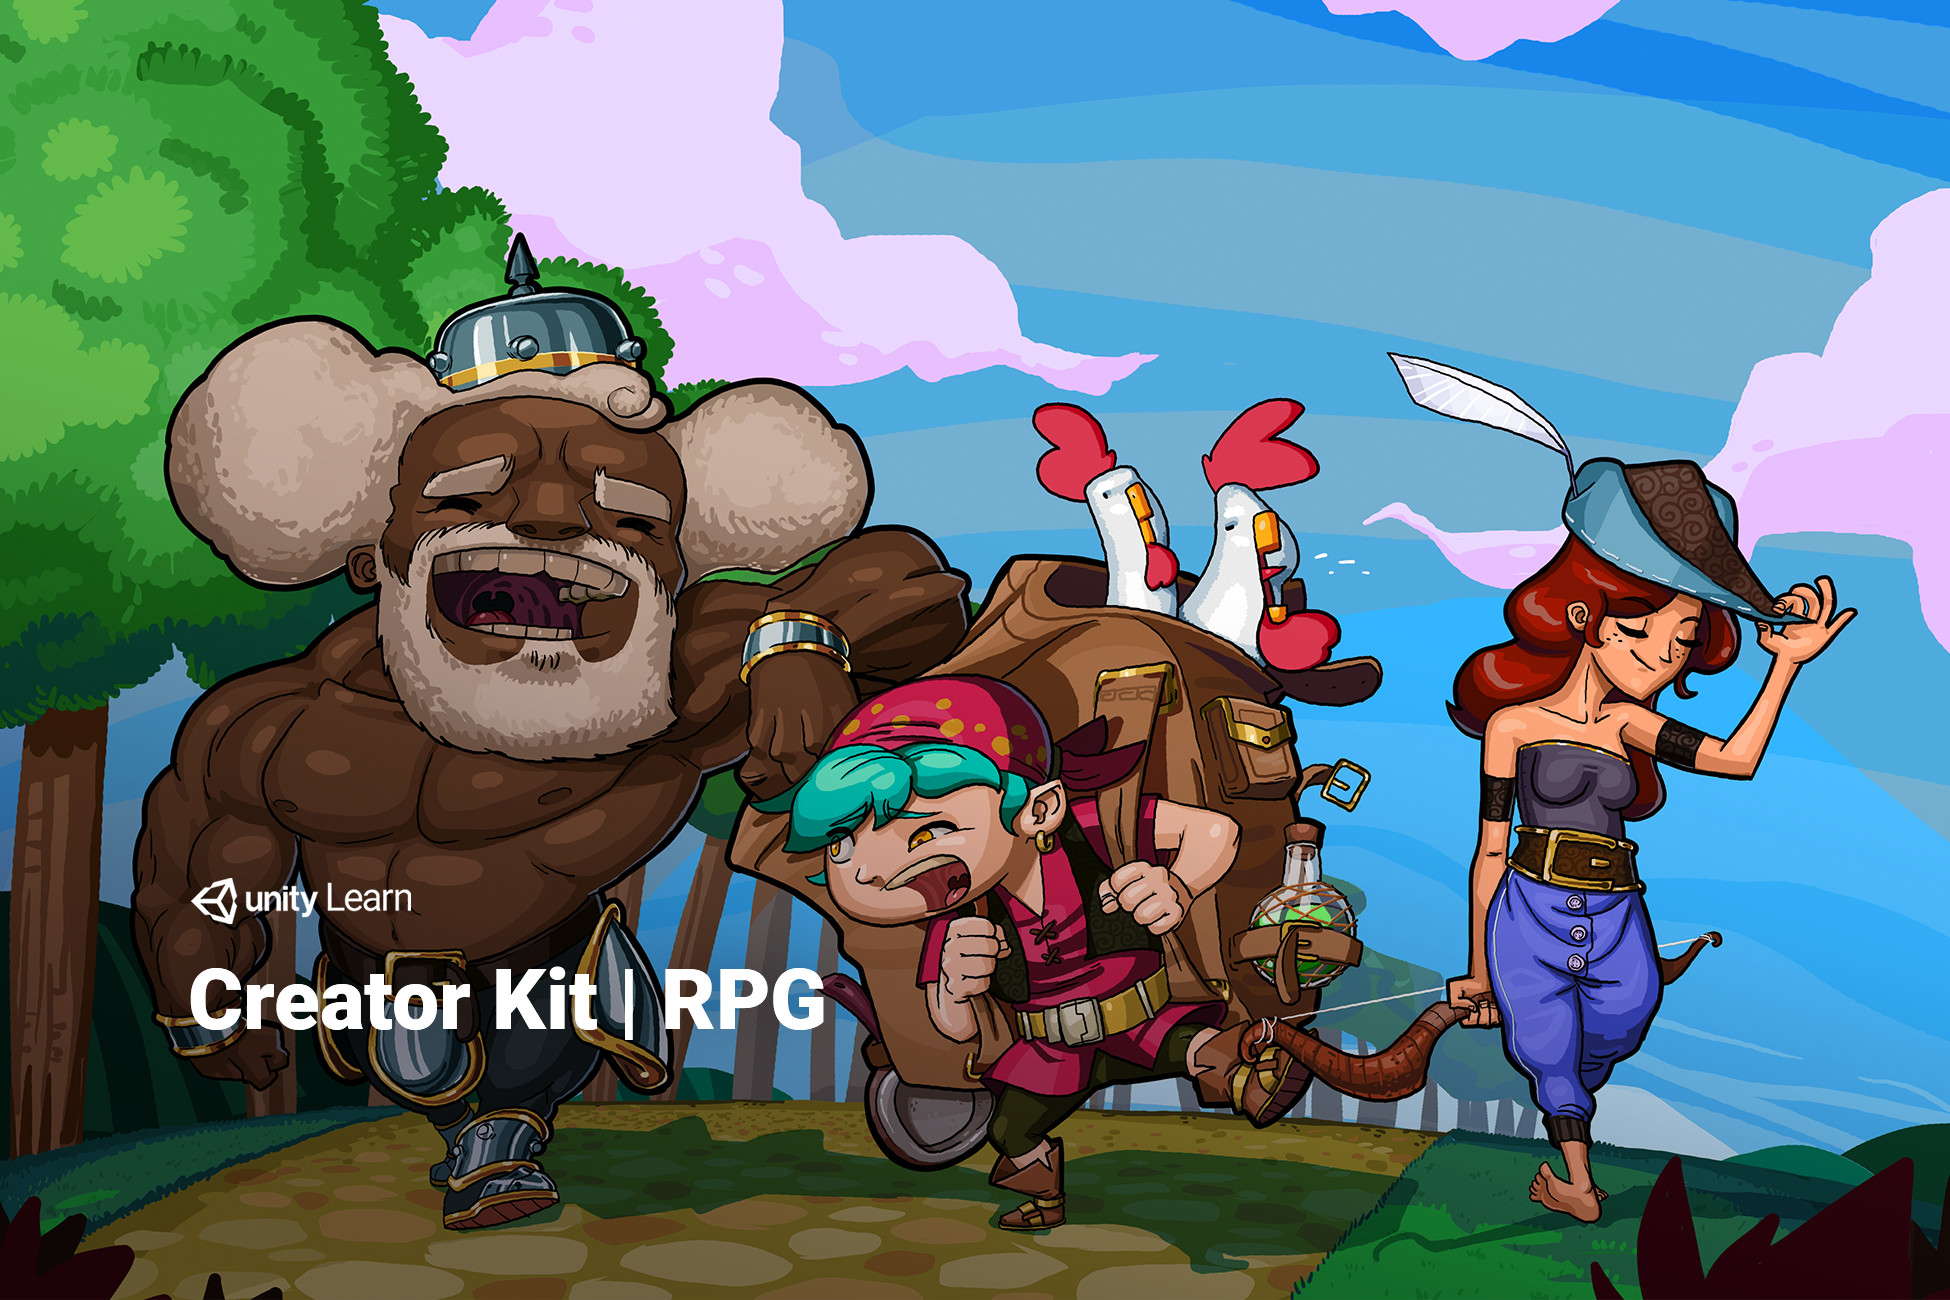 Creator Kit: RPG